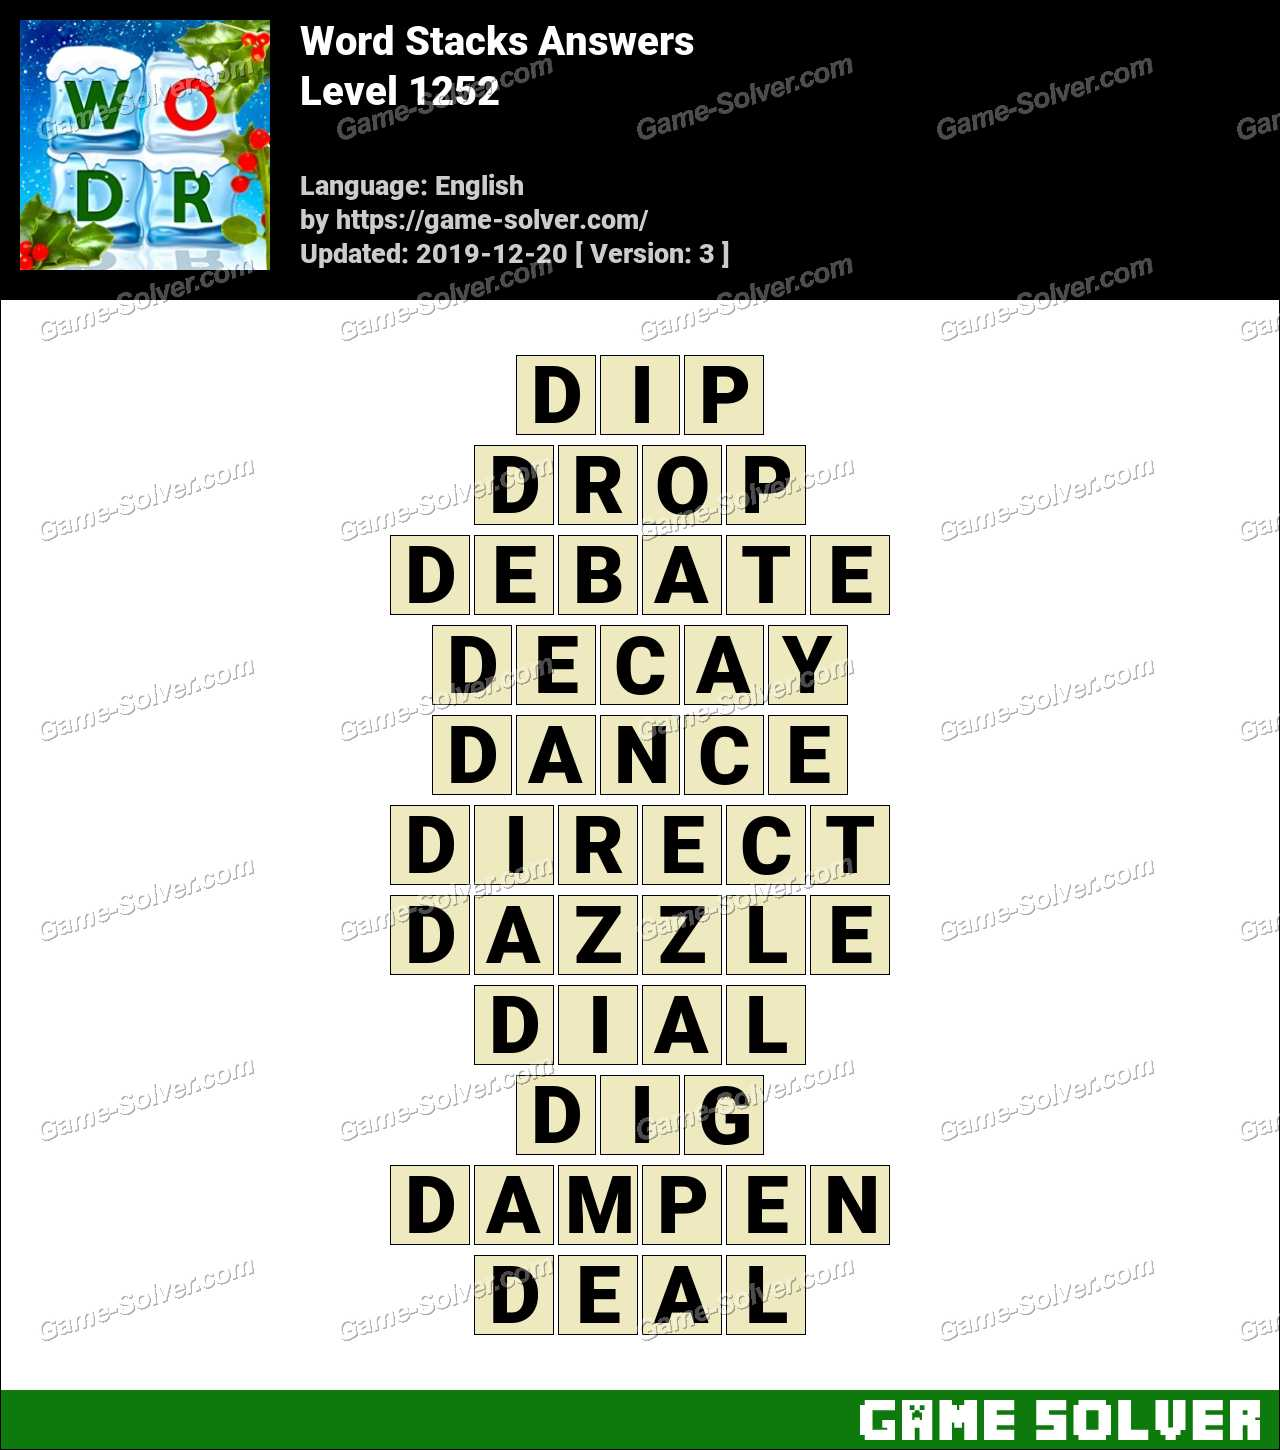 Word Stacks Level 1252 Answers